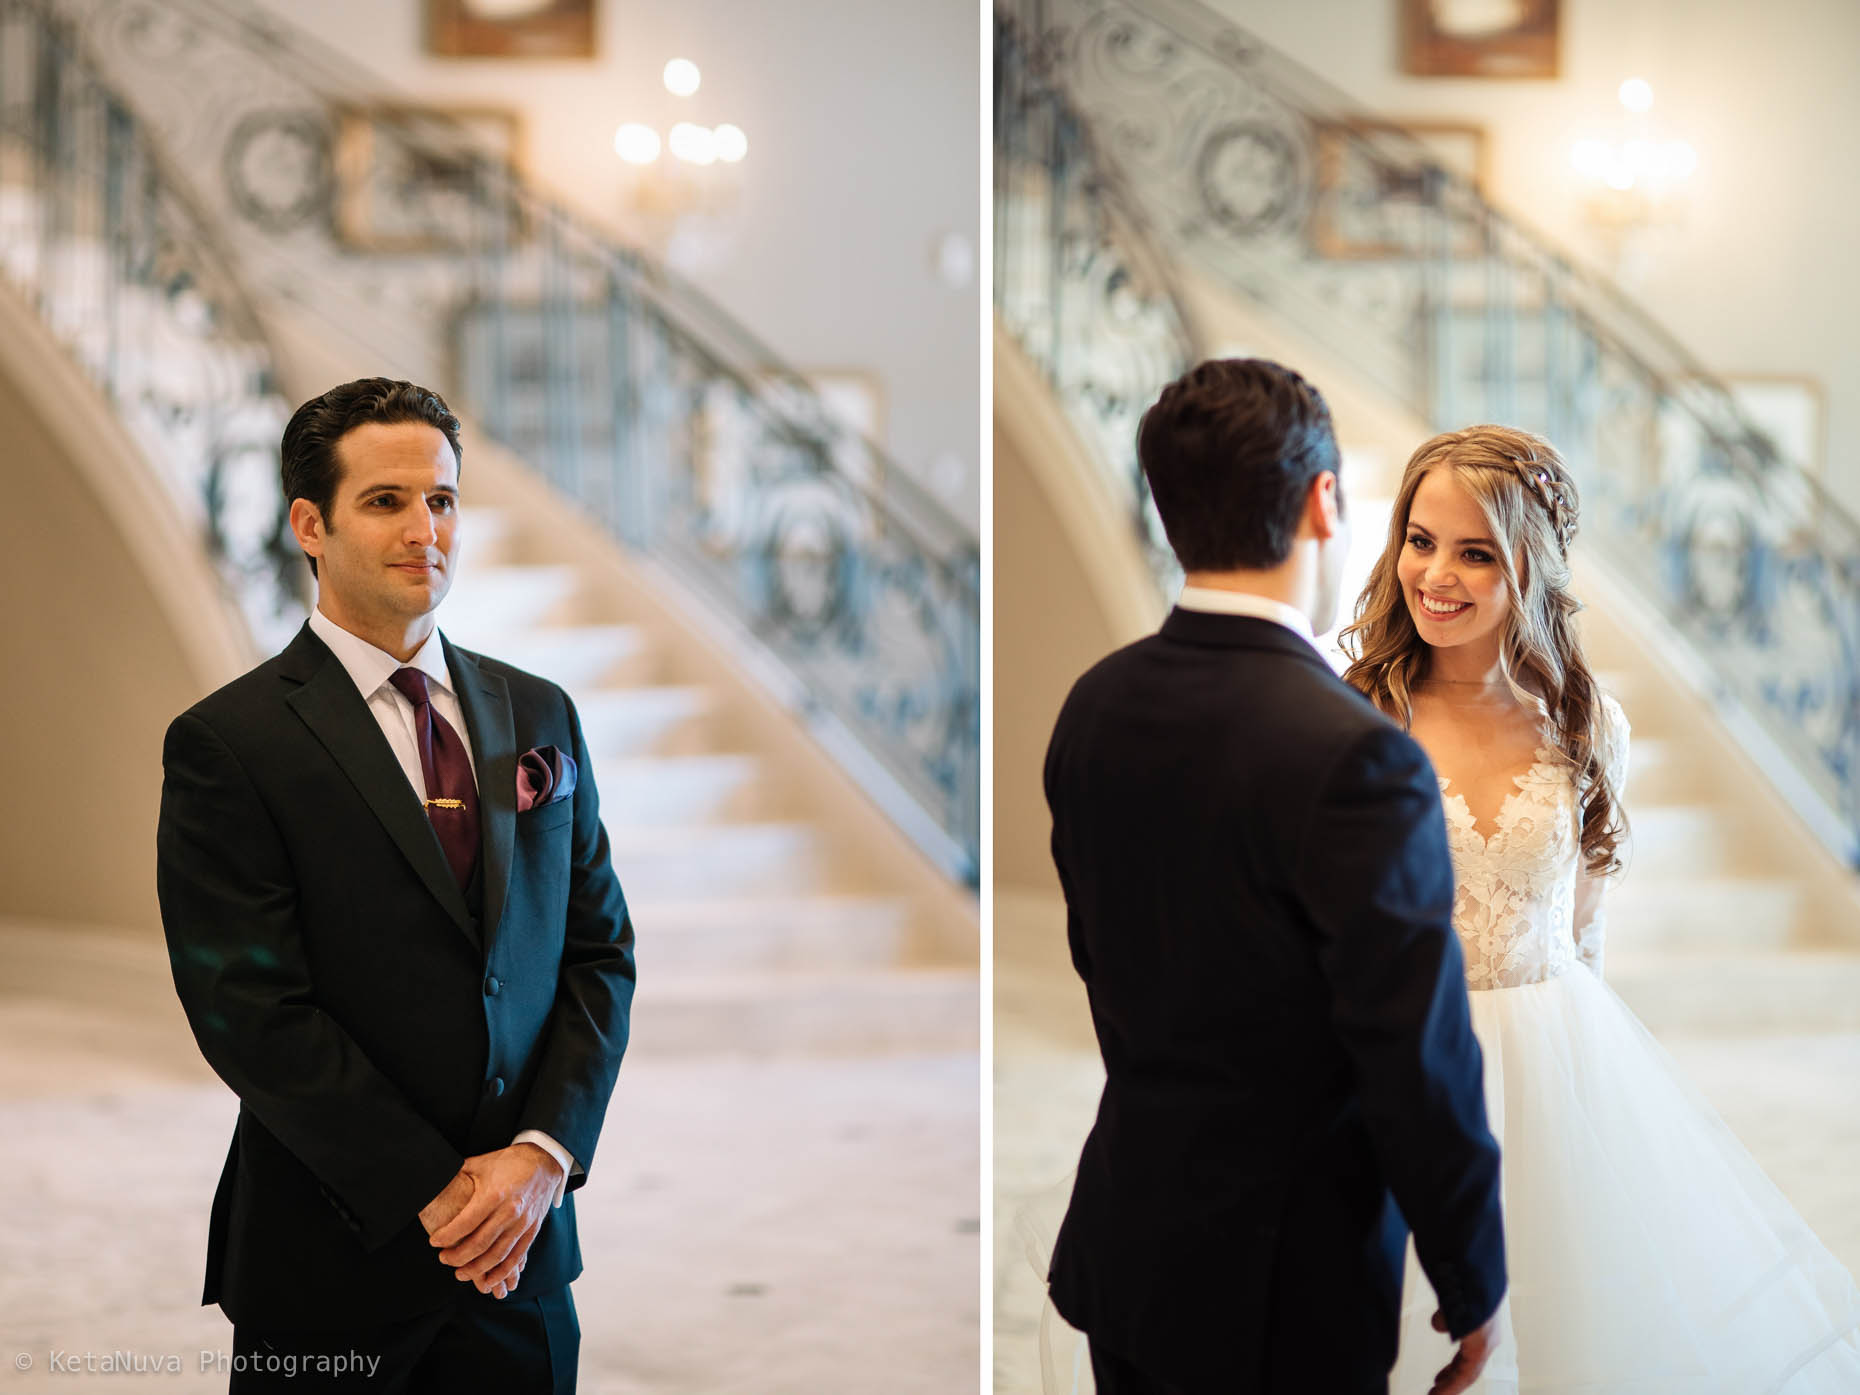 Bride and groom seeing each other for the first look!